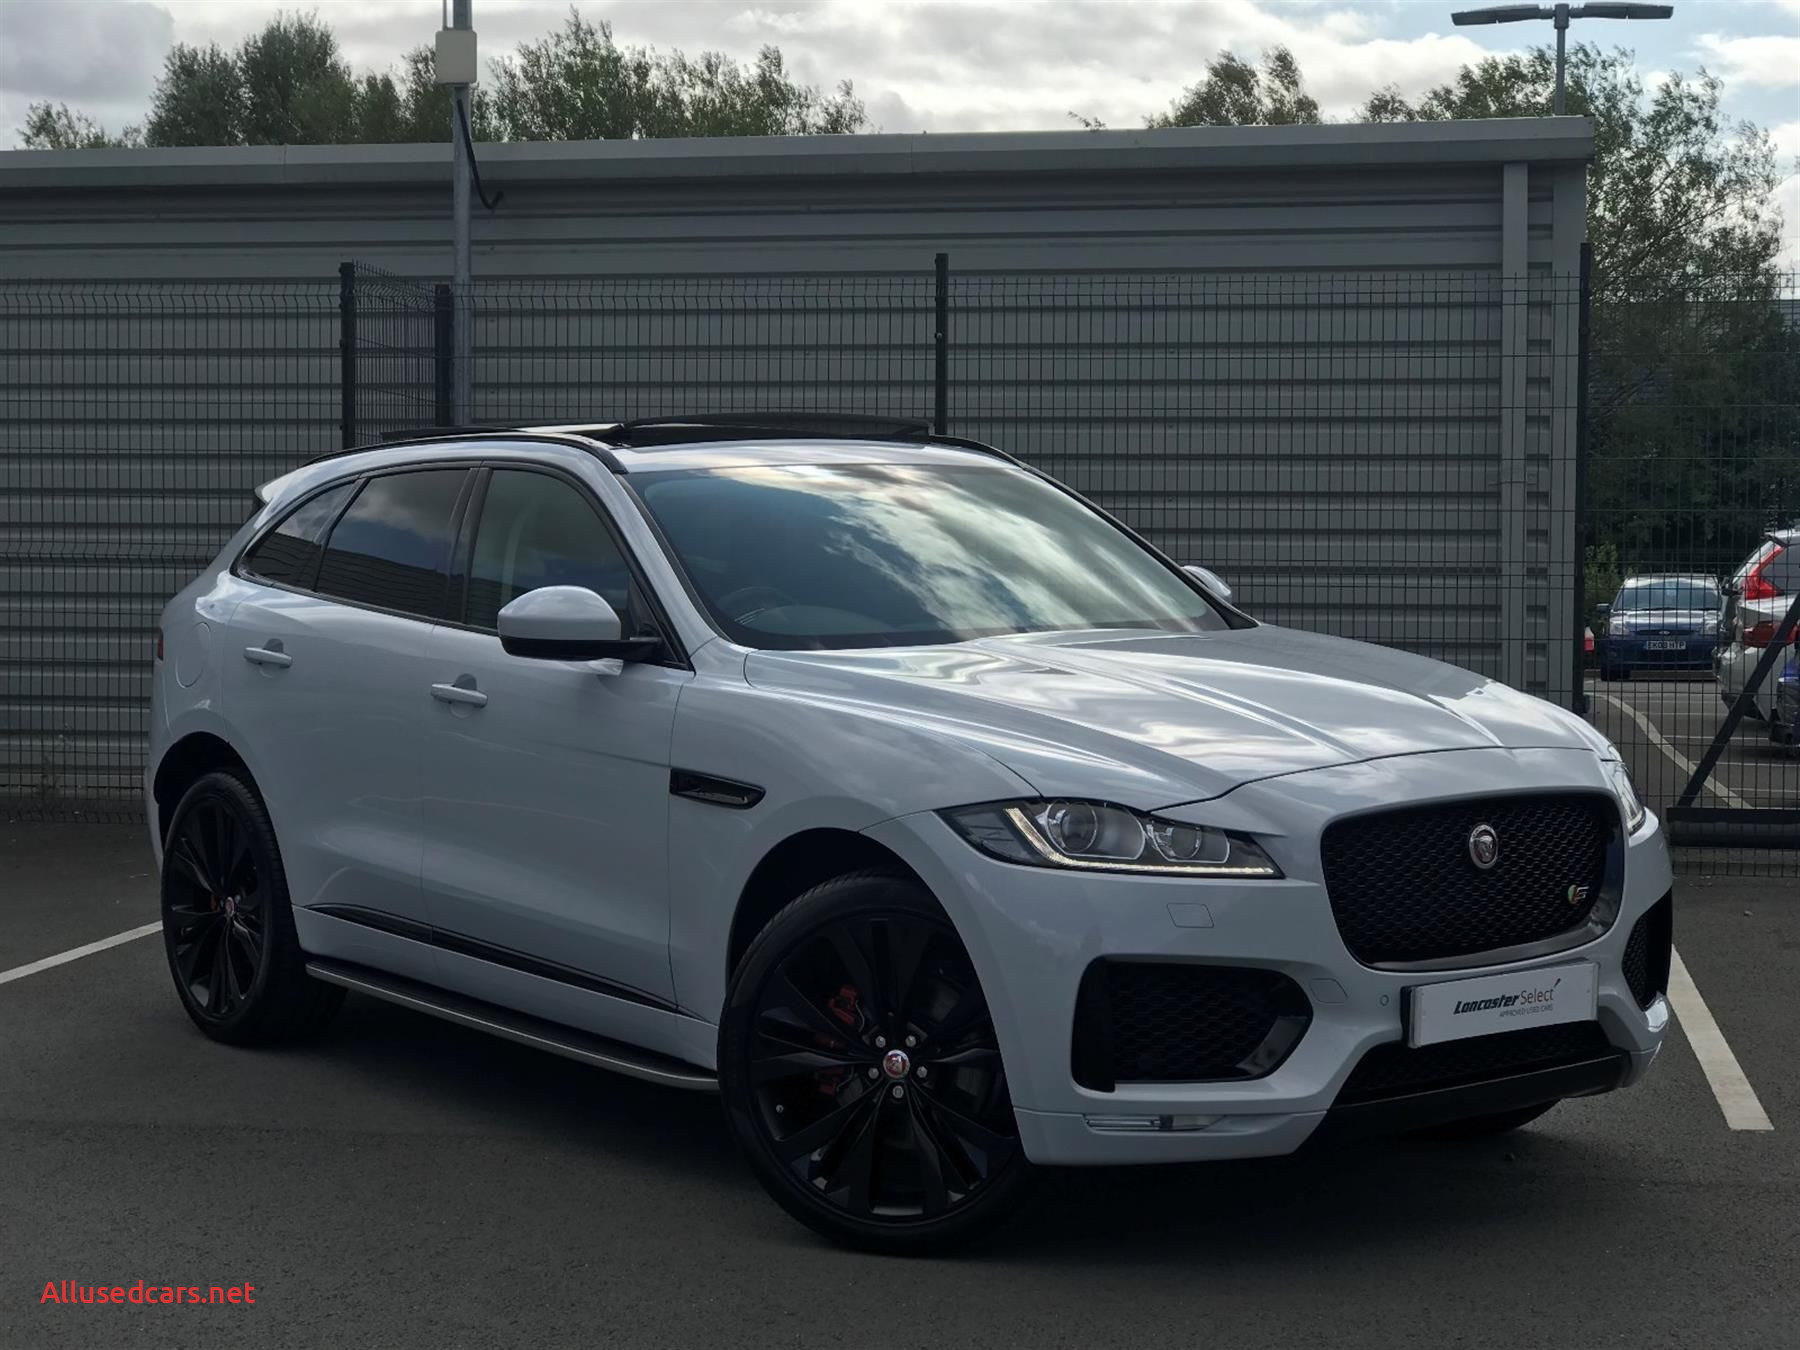 Used Lexus Suv Awesome Used 2019 Jaguar F Pace 3 0d V6 S 5dr Auto Awd for Sale In